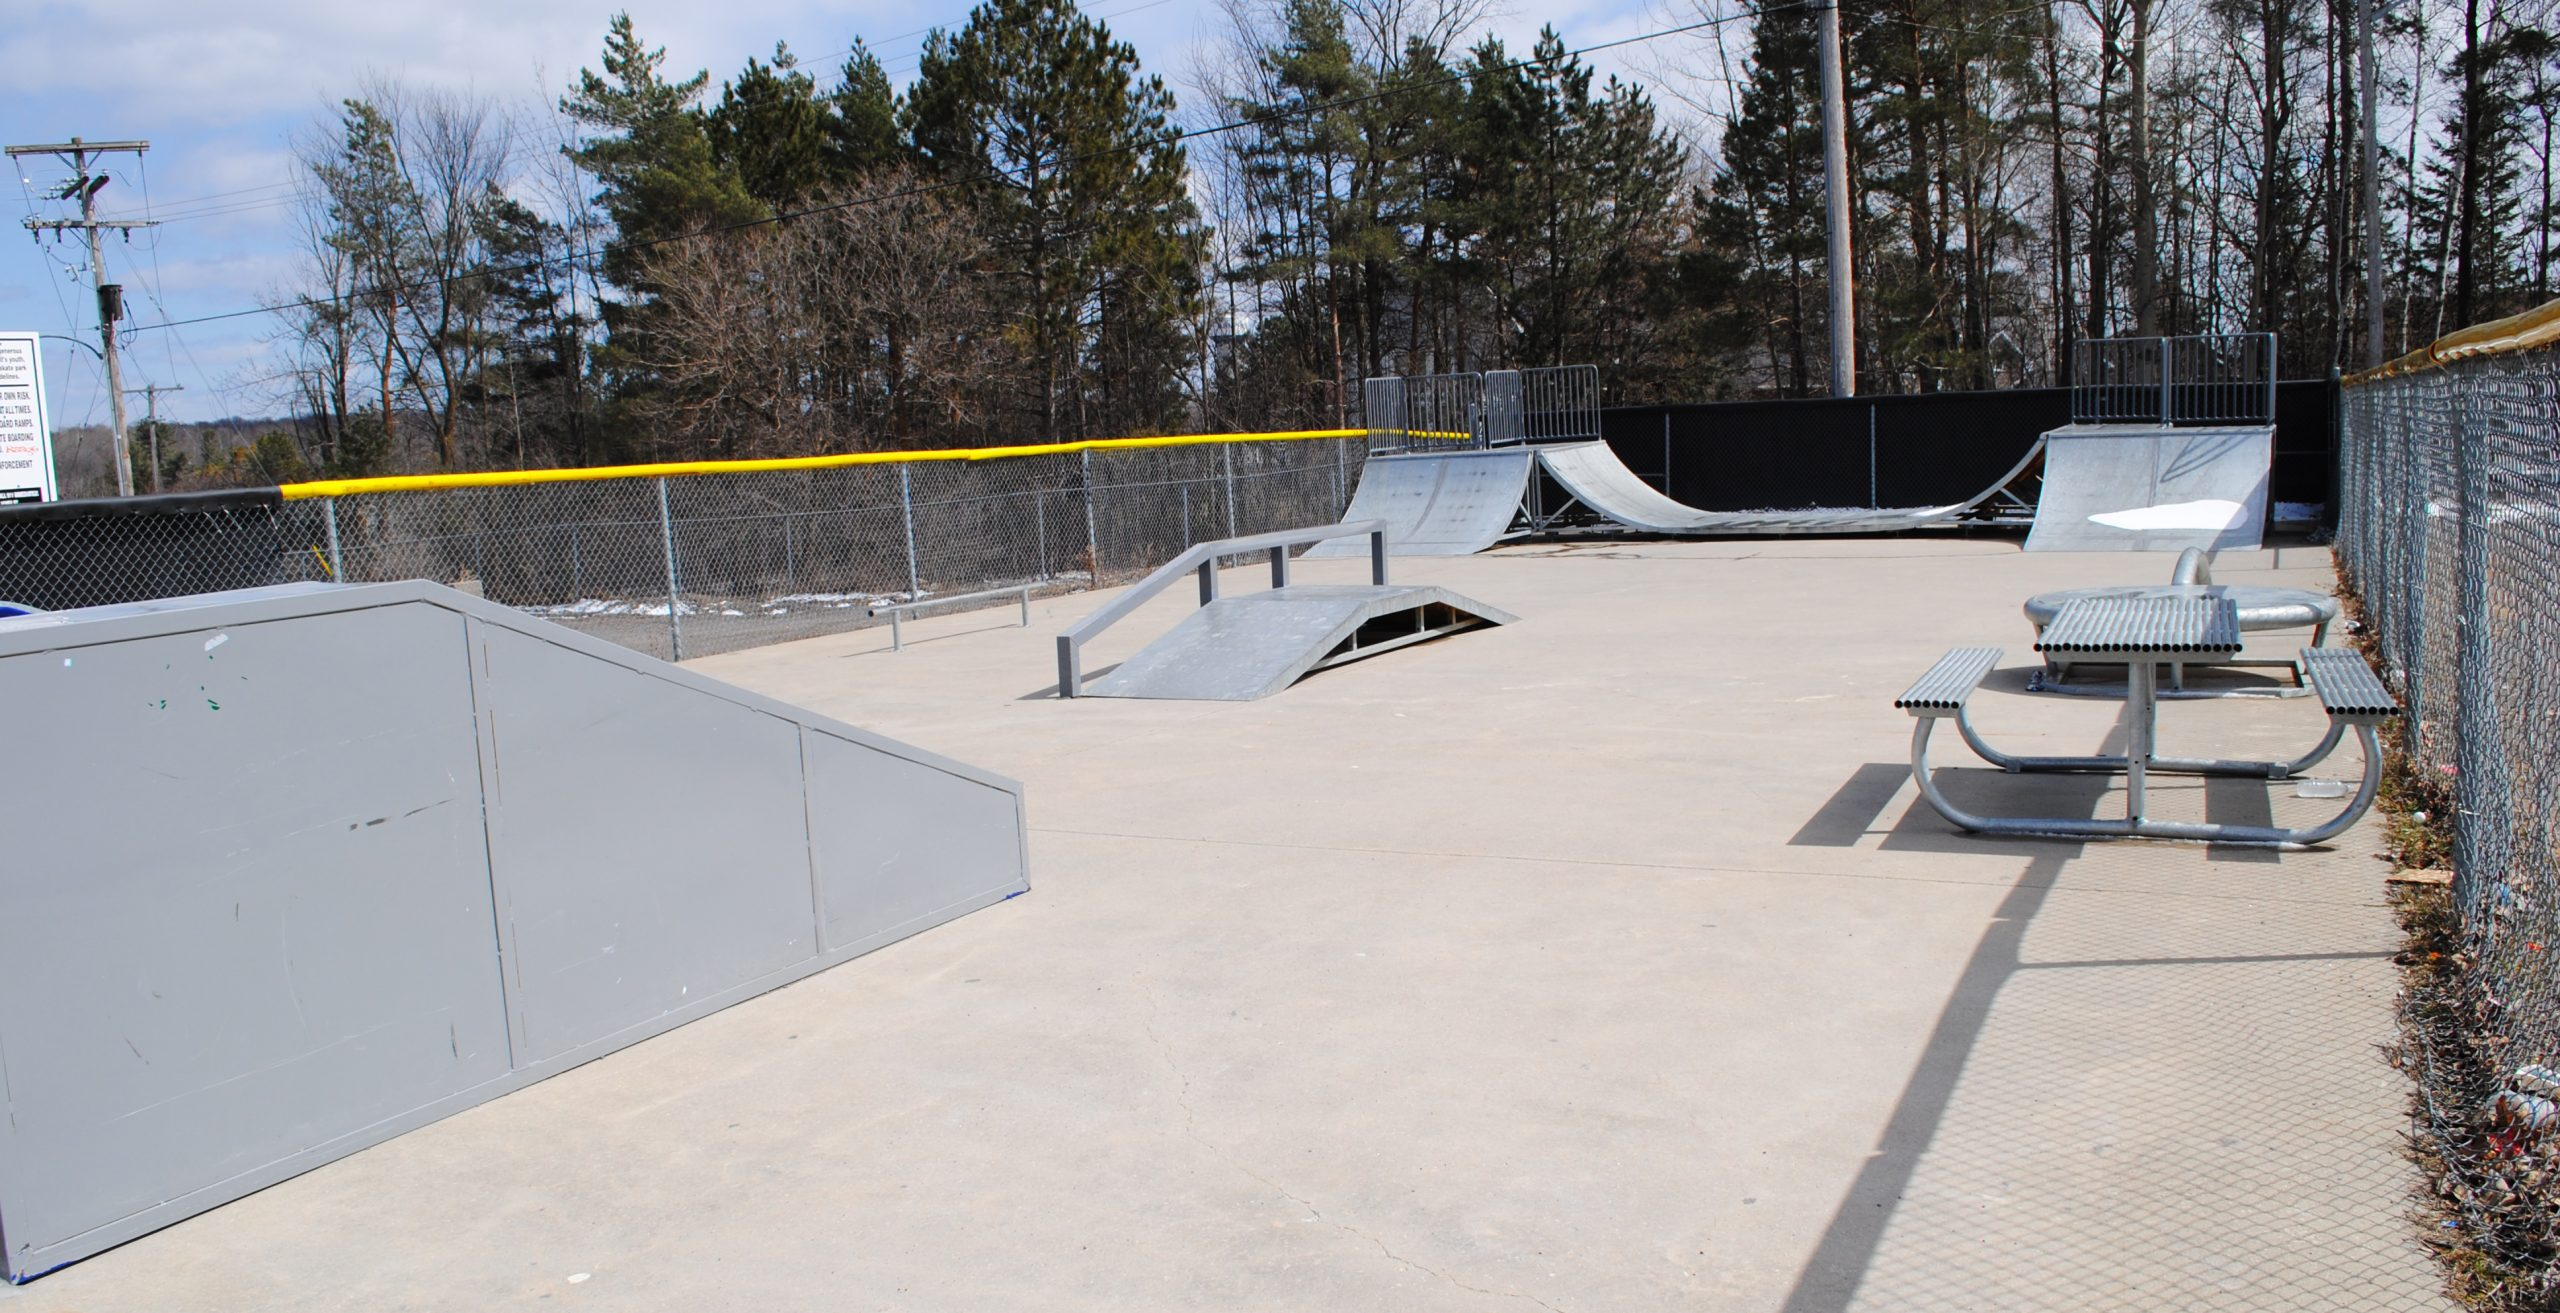 Skatepark_Image2-scaled